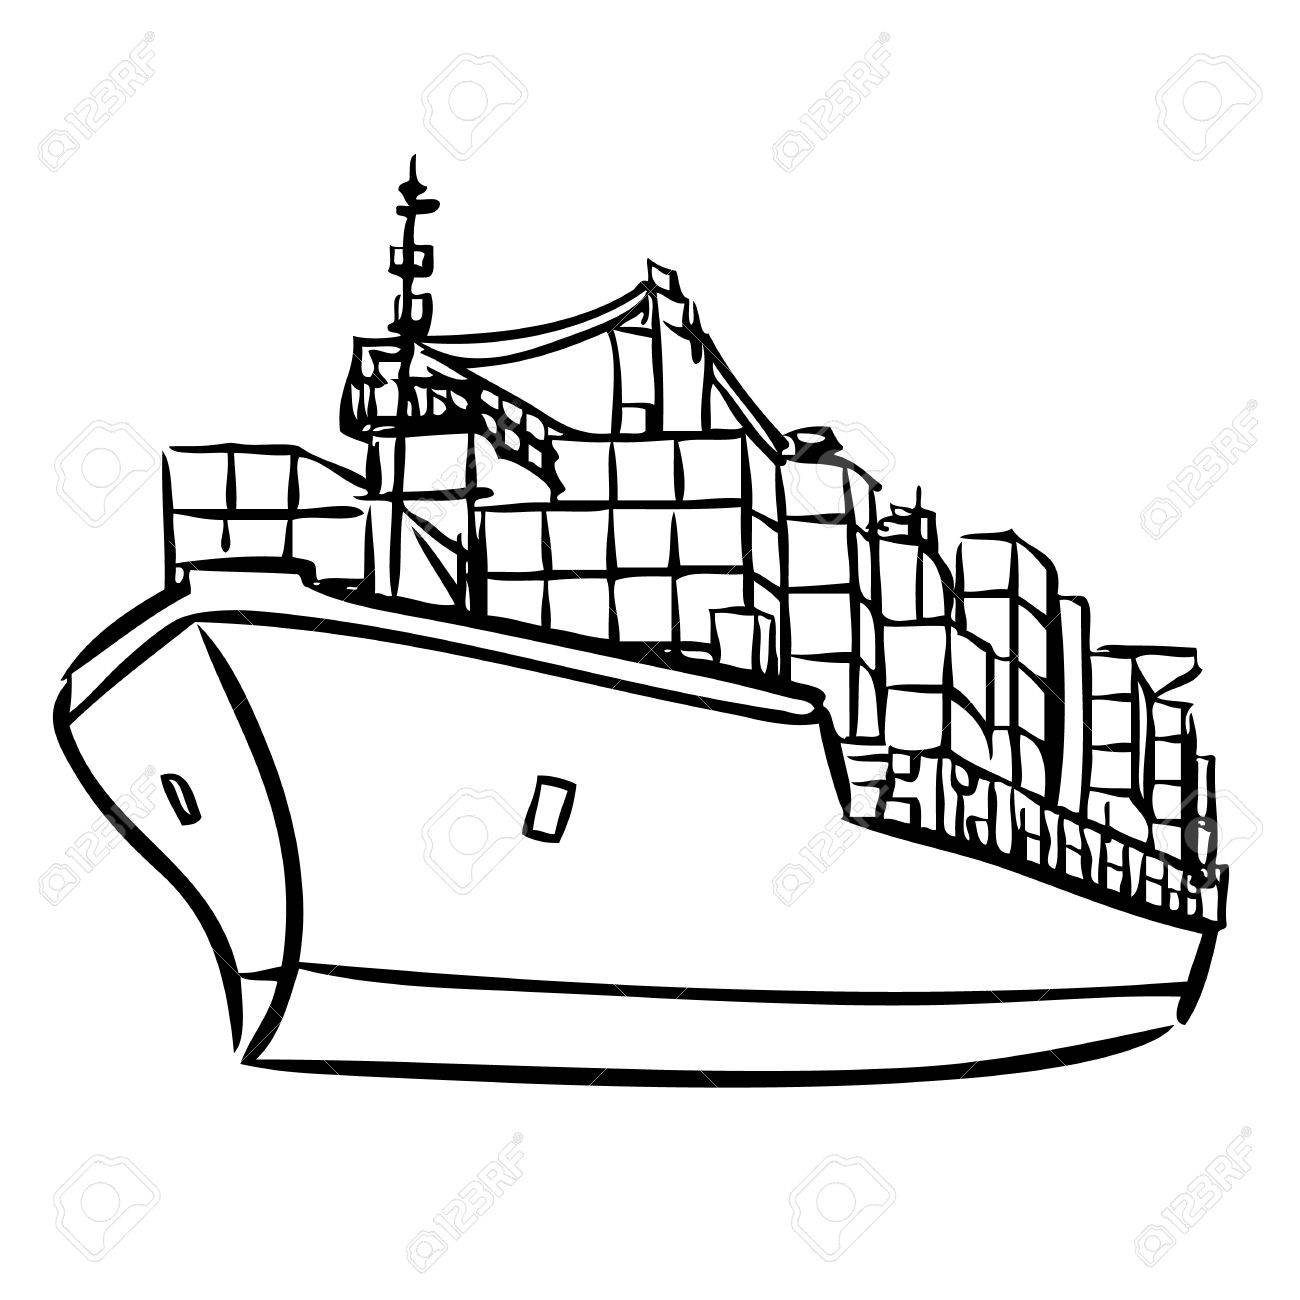 ship outline drawing at getdrawings com